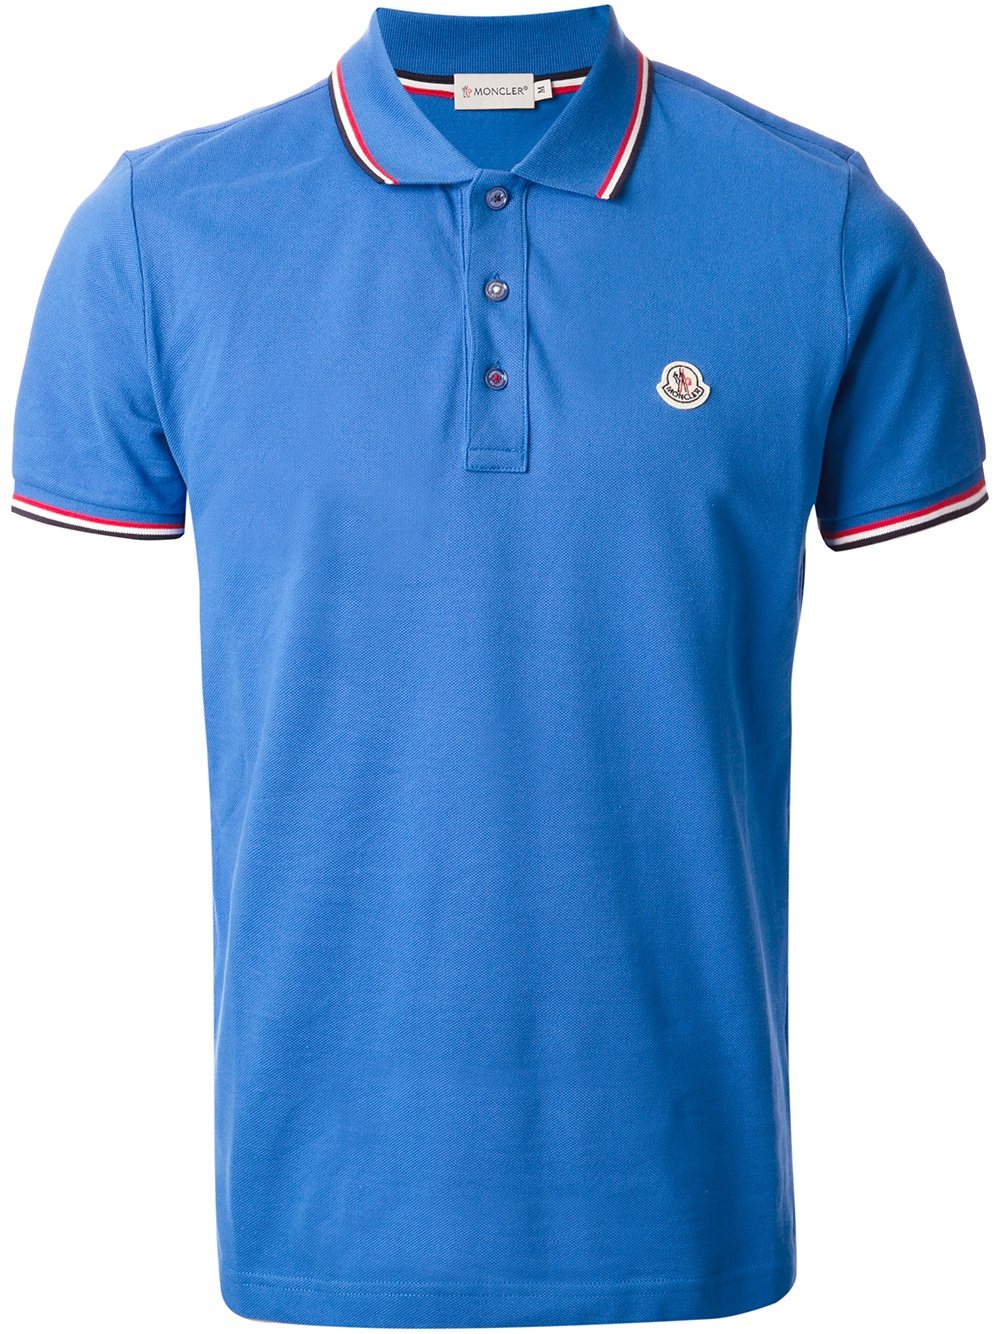 Moncler Slim Fit Polo Shirt In Blue For Men Lyst